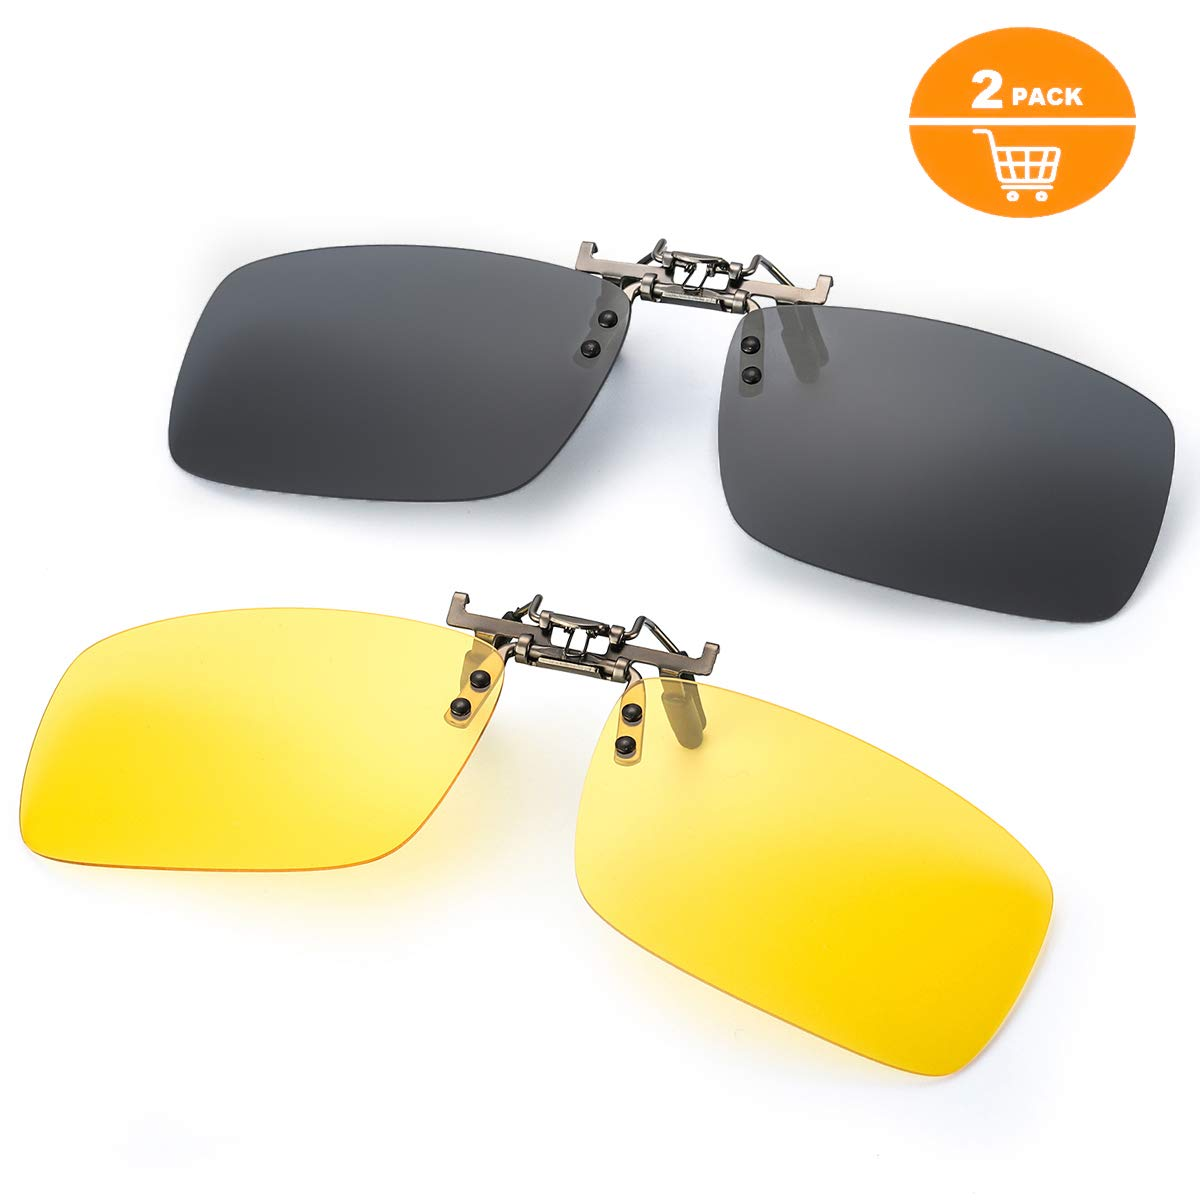 Clip on Sunglasses for Prescription Glasses, Flip up Rimless Anti Glare Night Vision lens for Driving Fishing, 2 PACK (grey polarized lens+yellow night lens, 5941) by ELIVWR (Image #1)